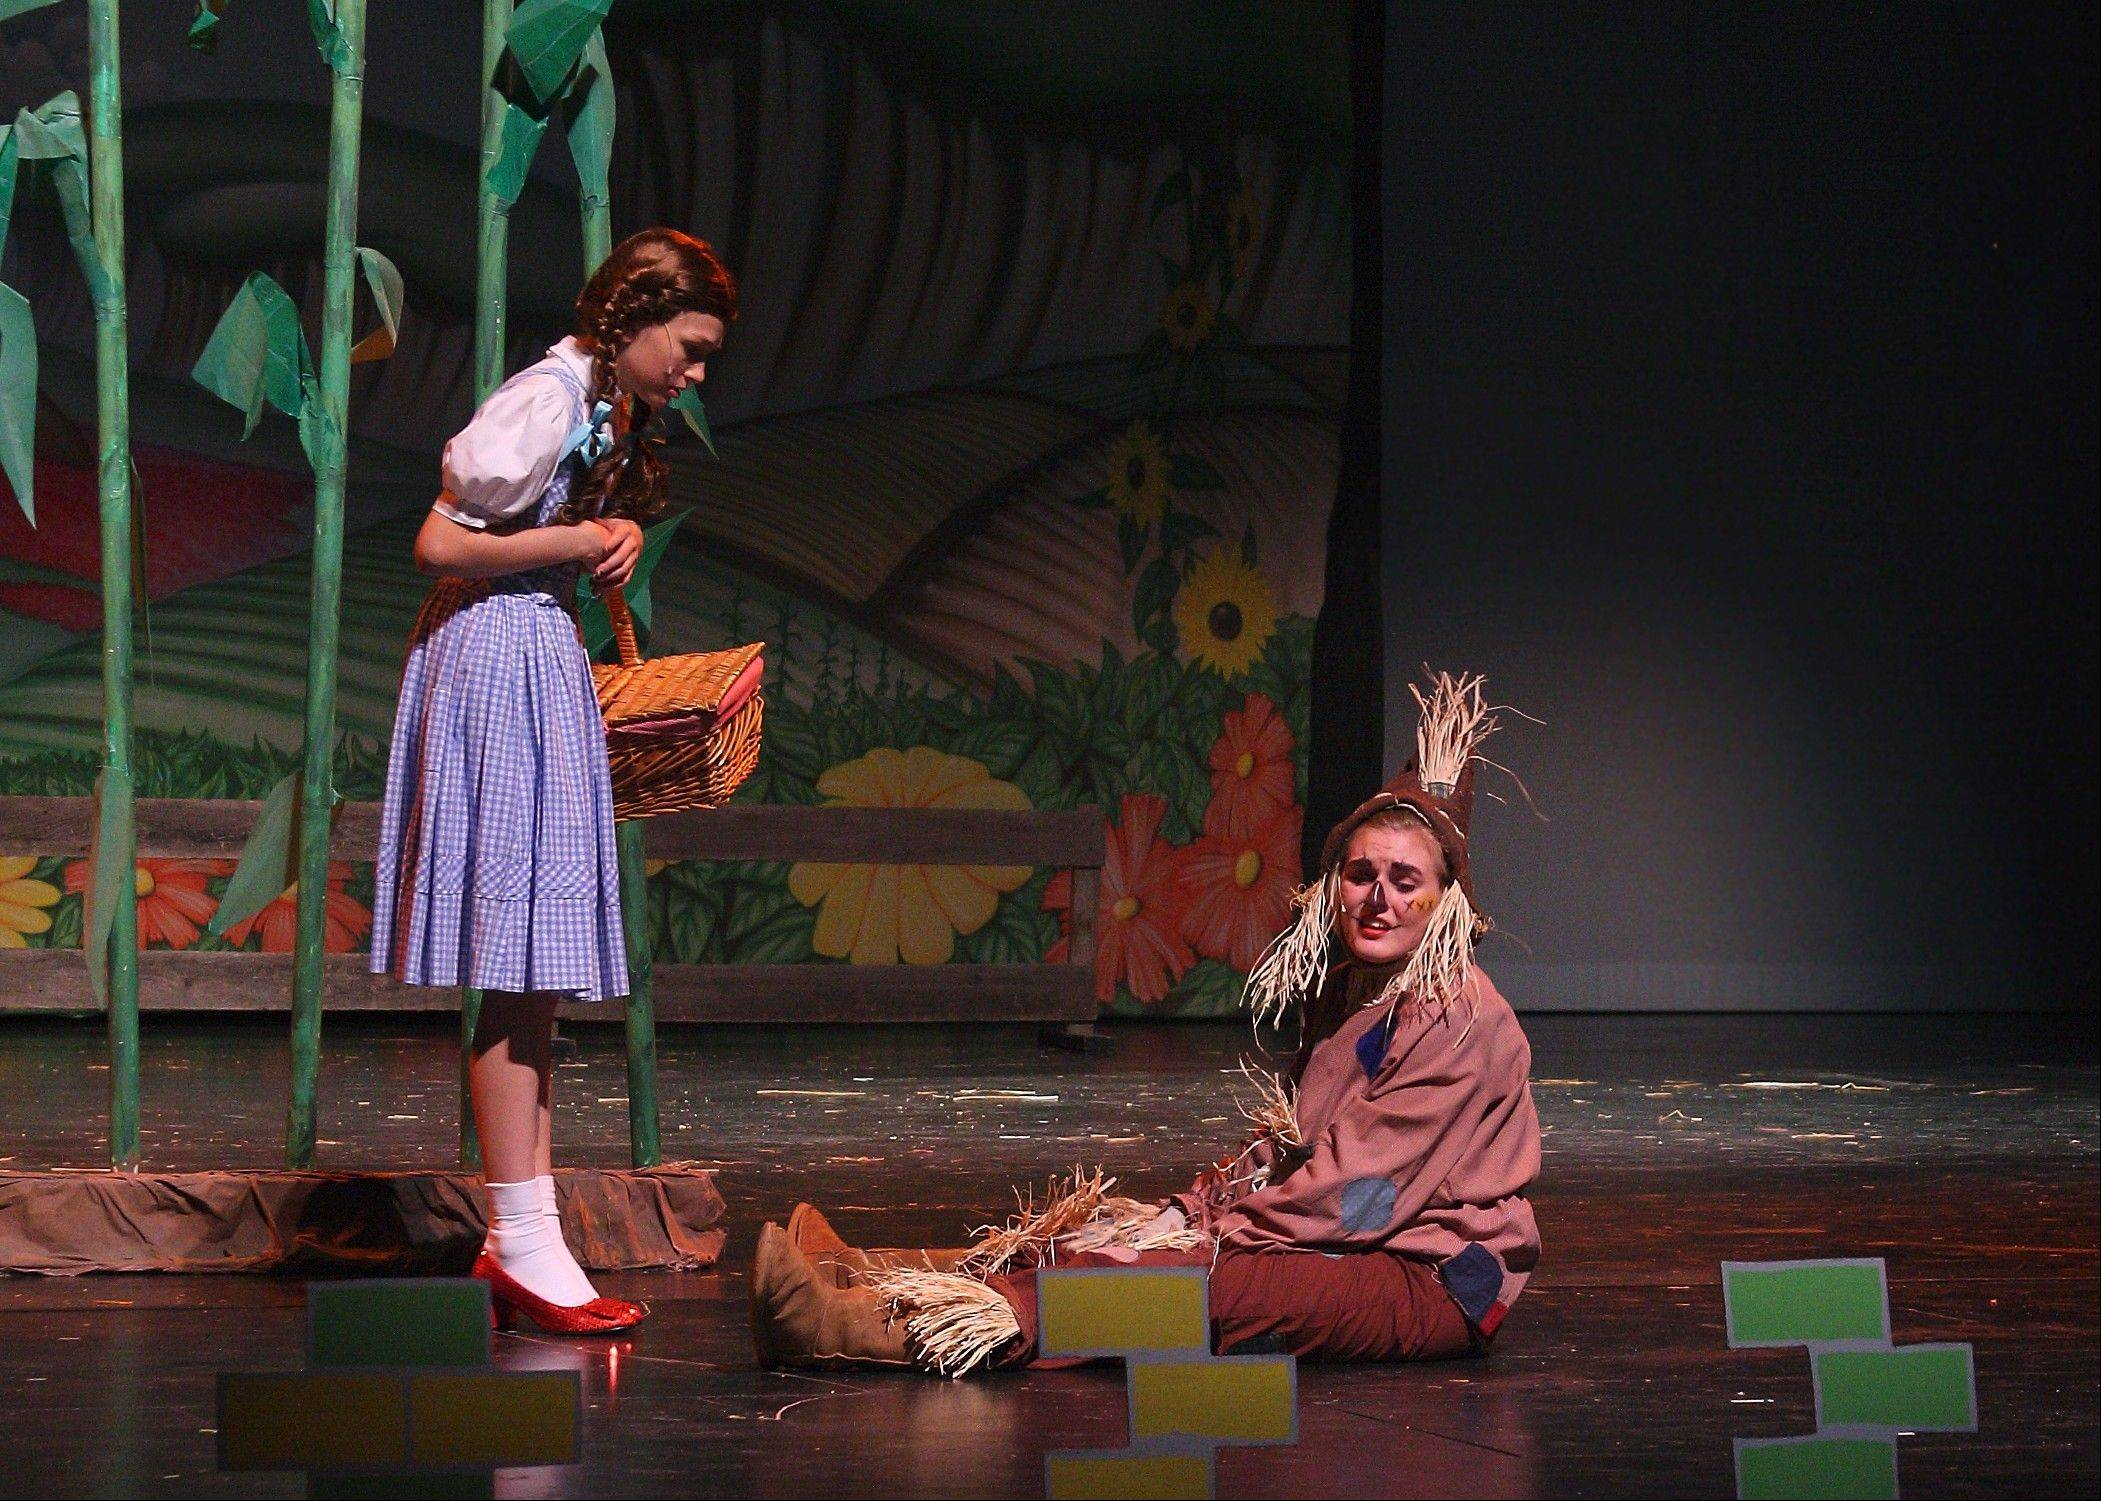 Shannon McCoy, who plays Dorothy; and Kayla Nicosia, the Scarecrow, are friends both on and offstage.